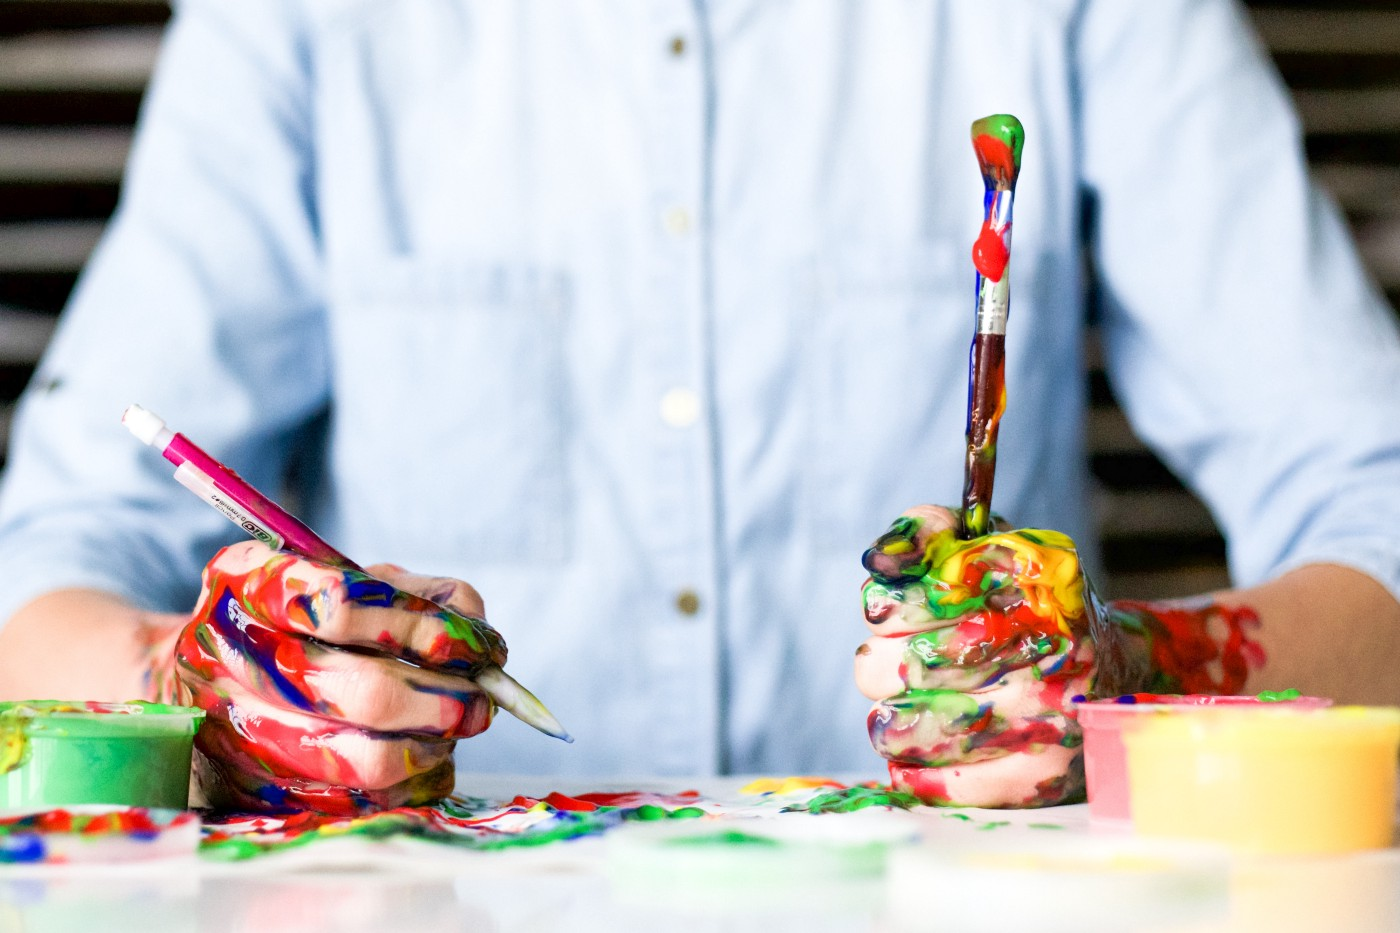 Hands of a painter covered in colorful paint